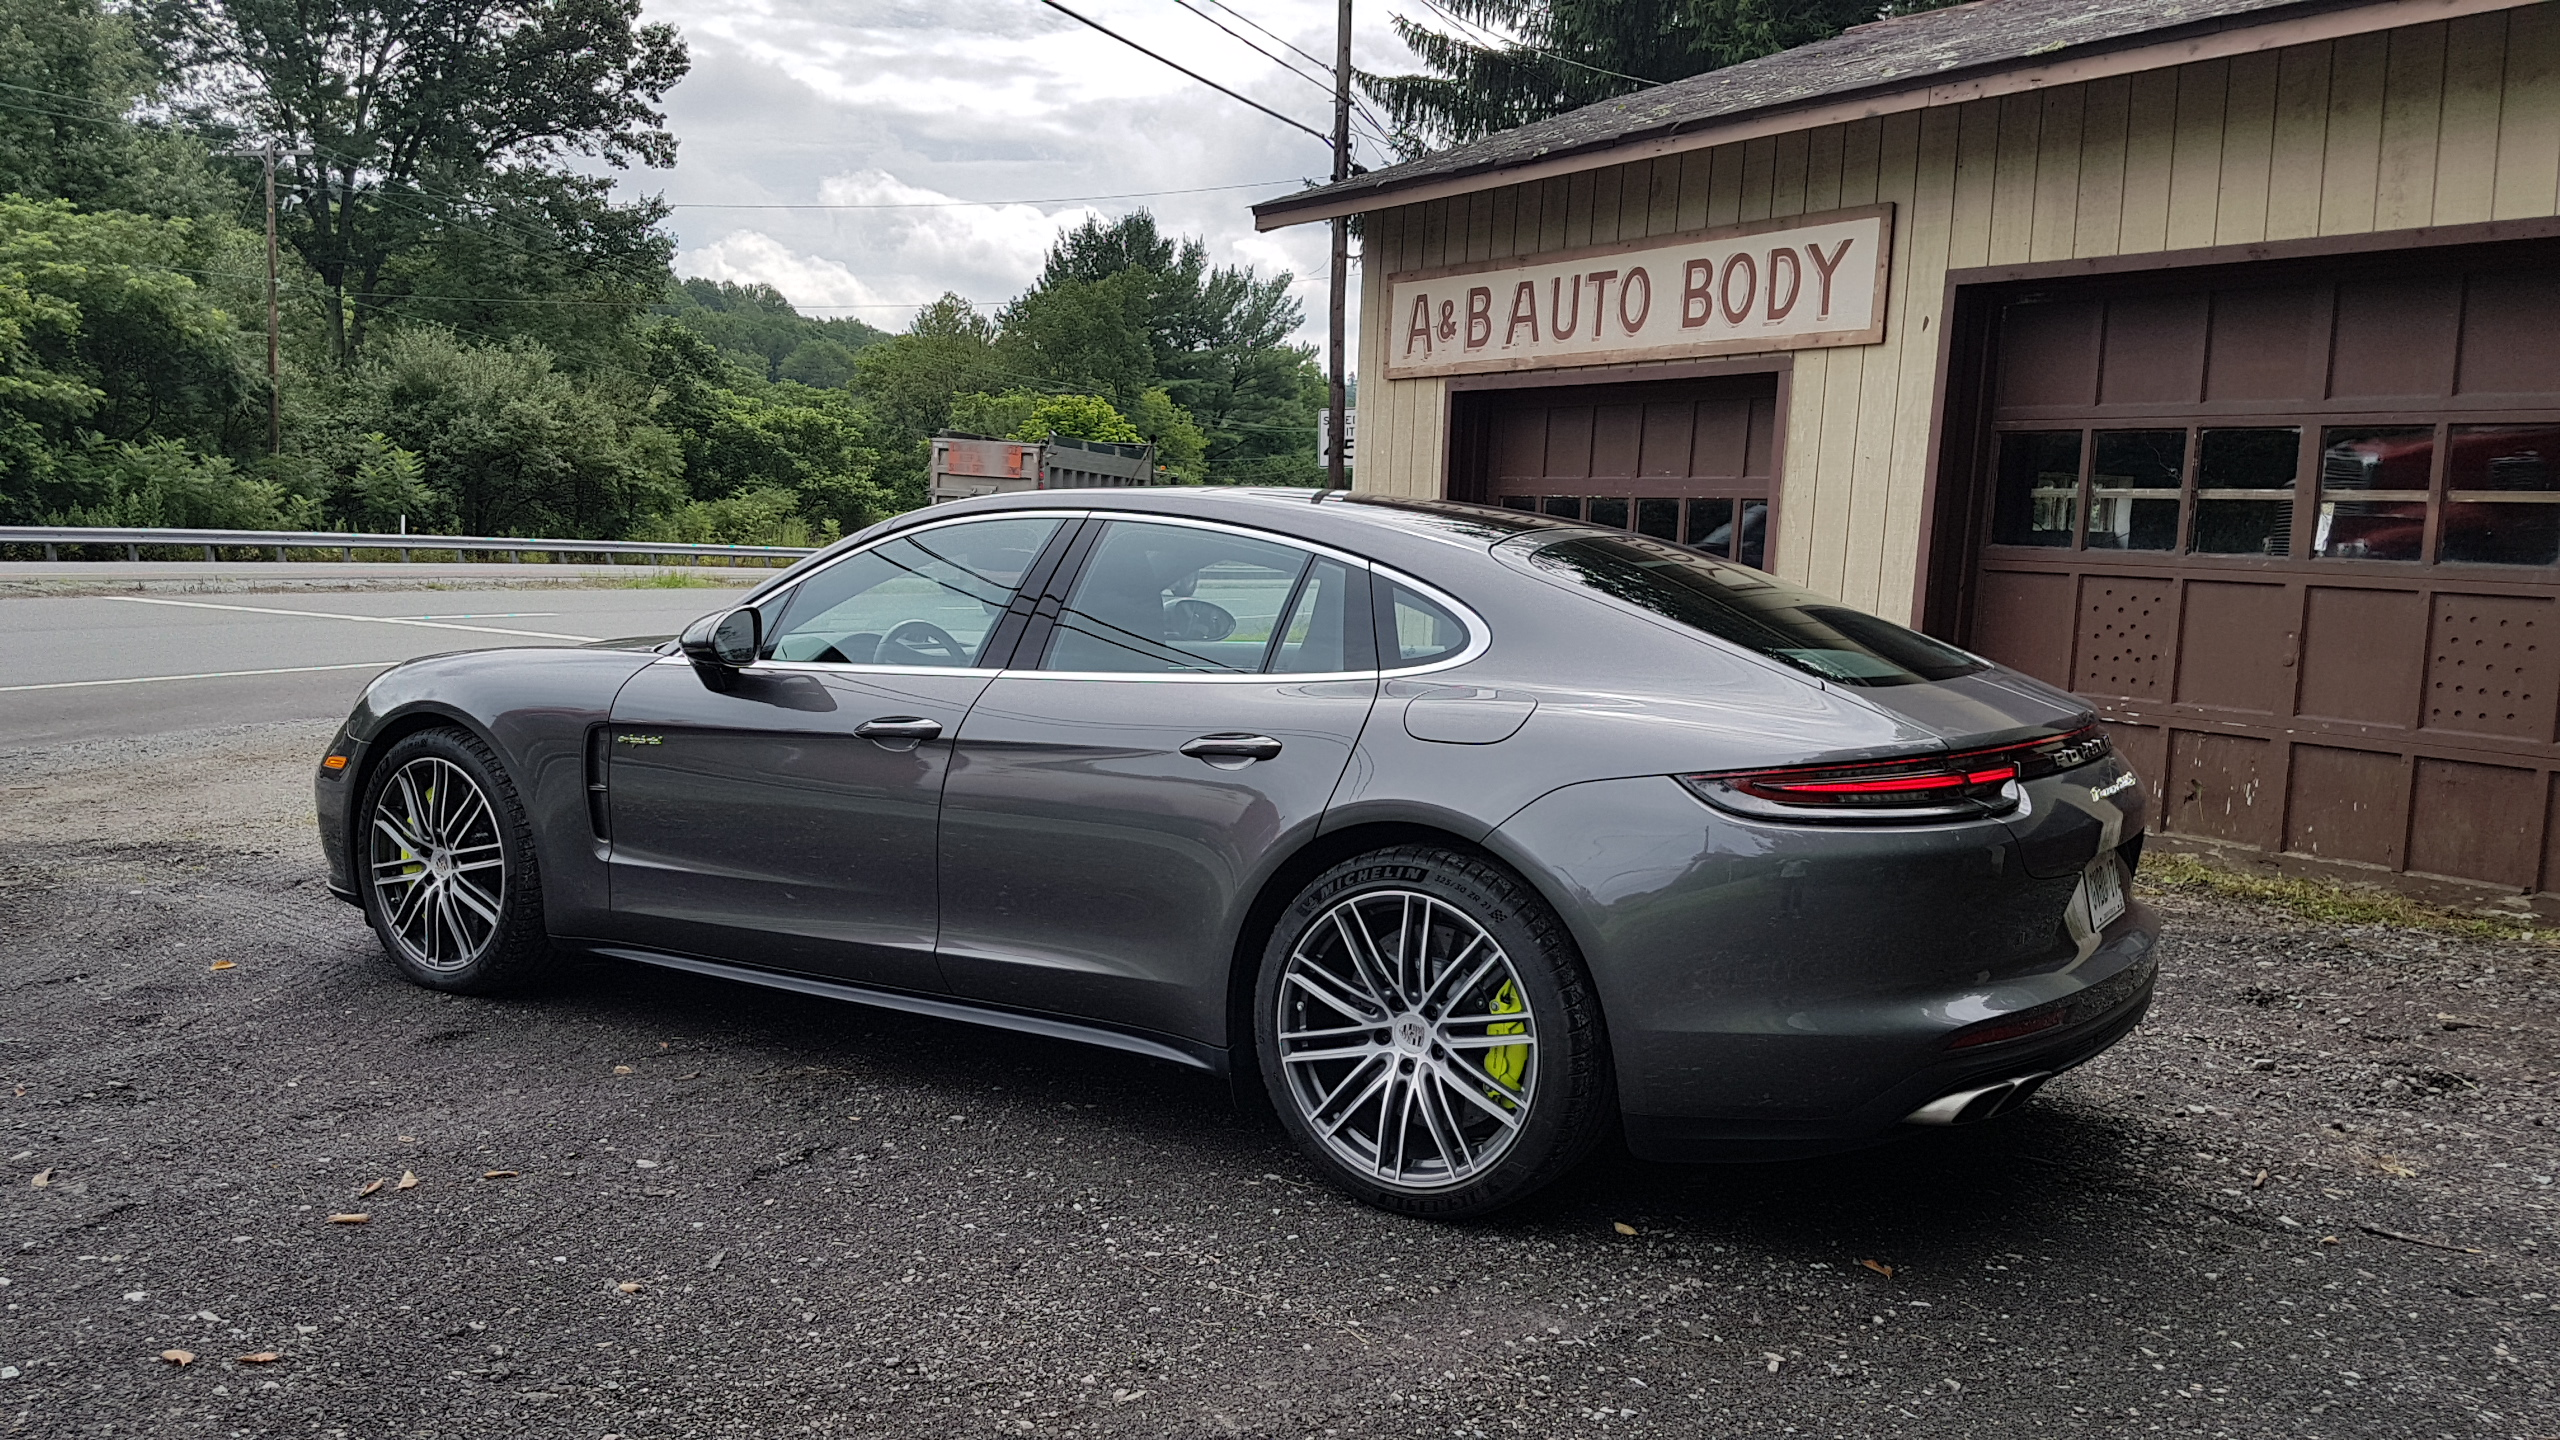 Porsche Panamera Turbo S E-Hybrid Review